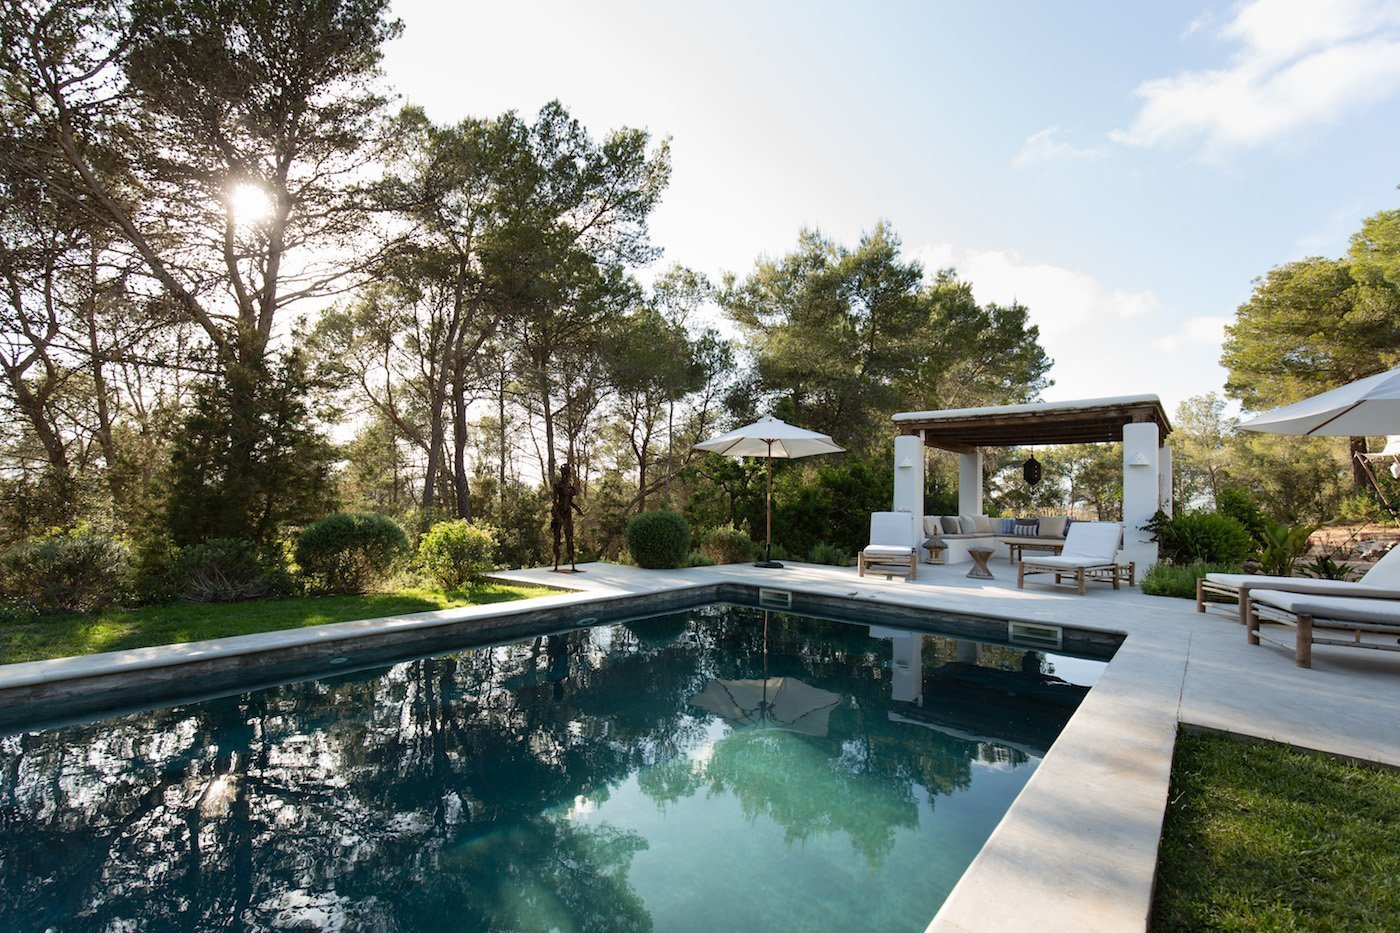 5 Hotels: Wellness & Detox - yogarosa retreats ibiza | Love Daily Dose